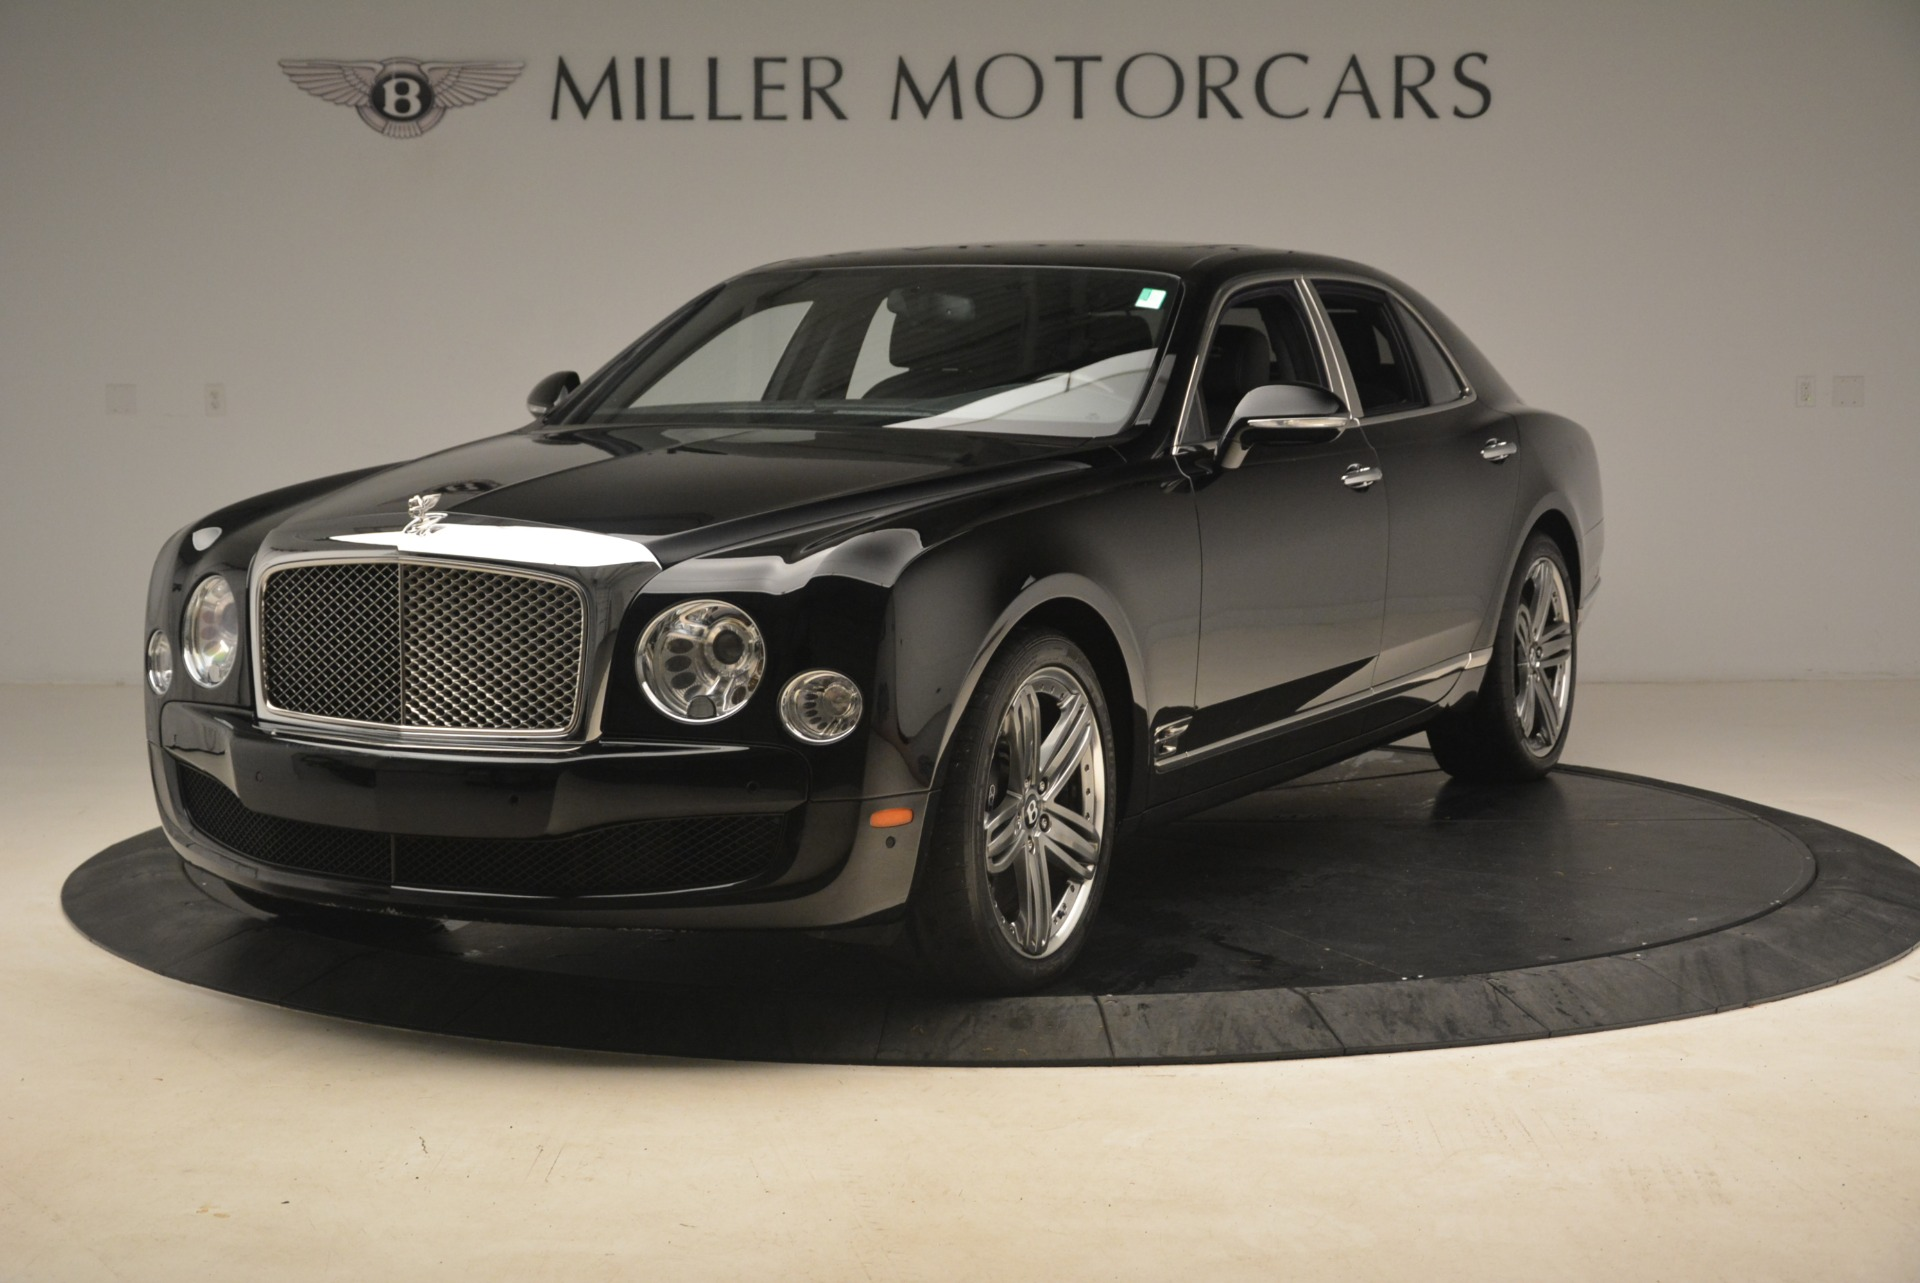 Used 2013 Bentley Mulsanne Le Mans Edition for sale Sold at Rolls-Royce Motor Cars Greenwich in Greenwich CT 06830 1